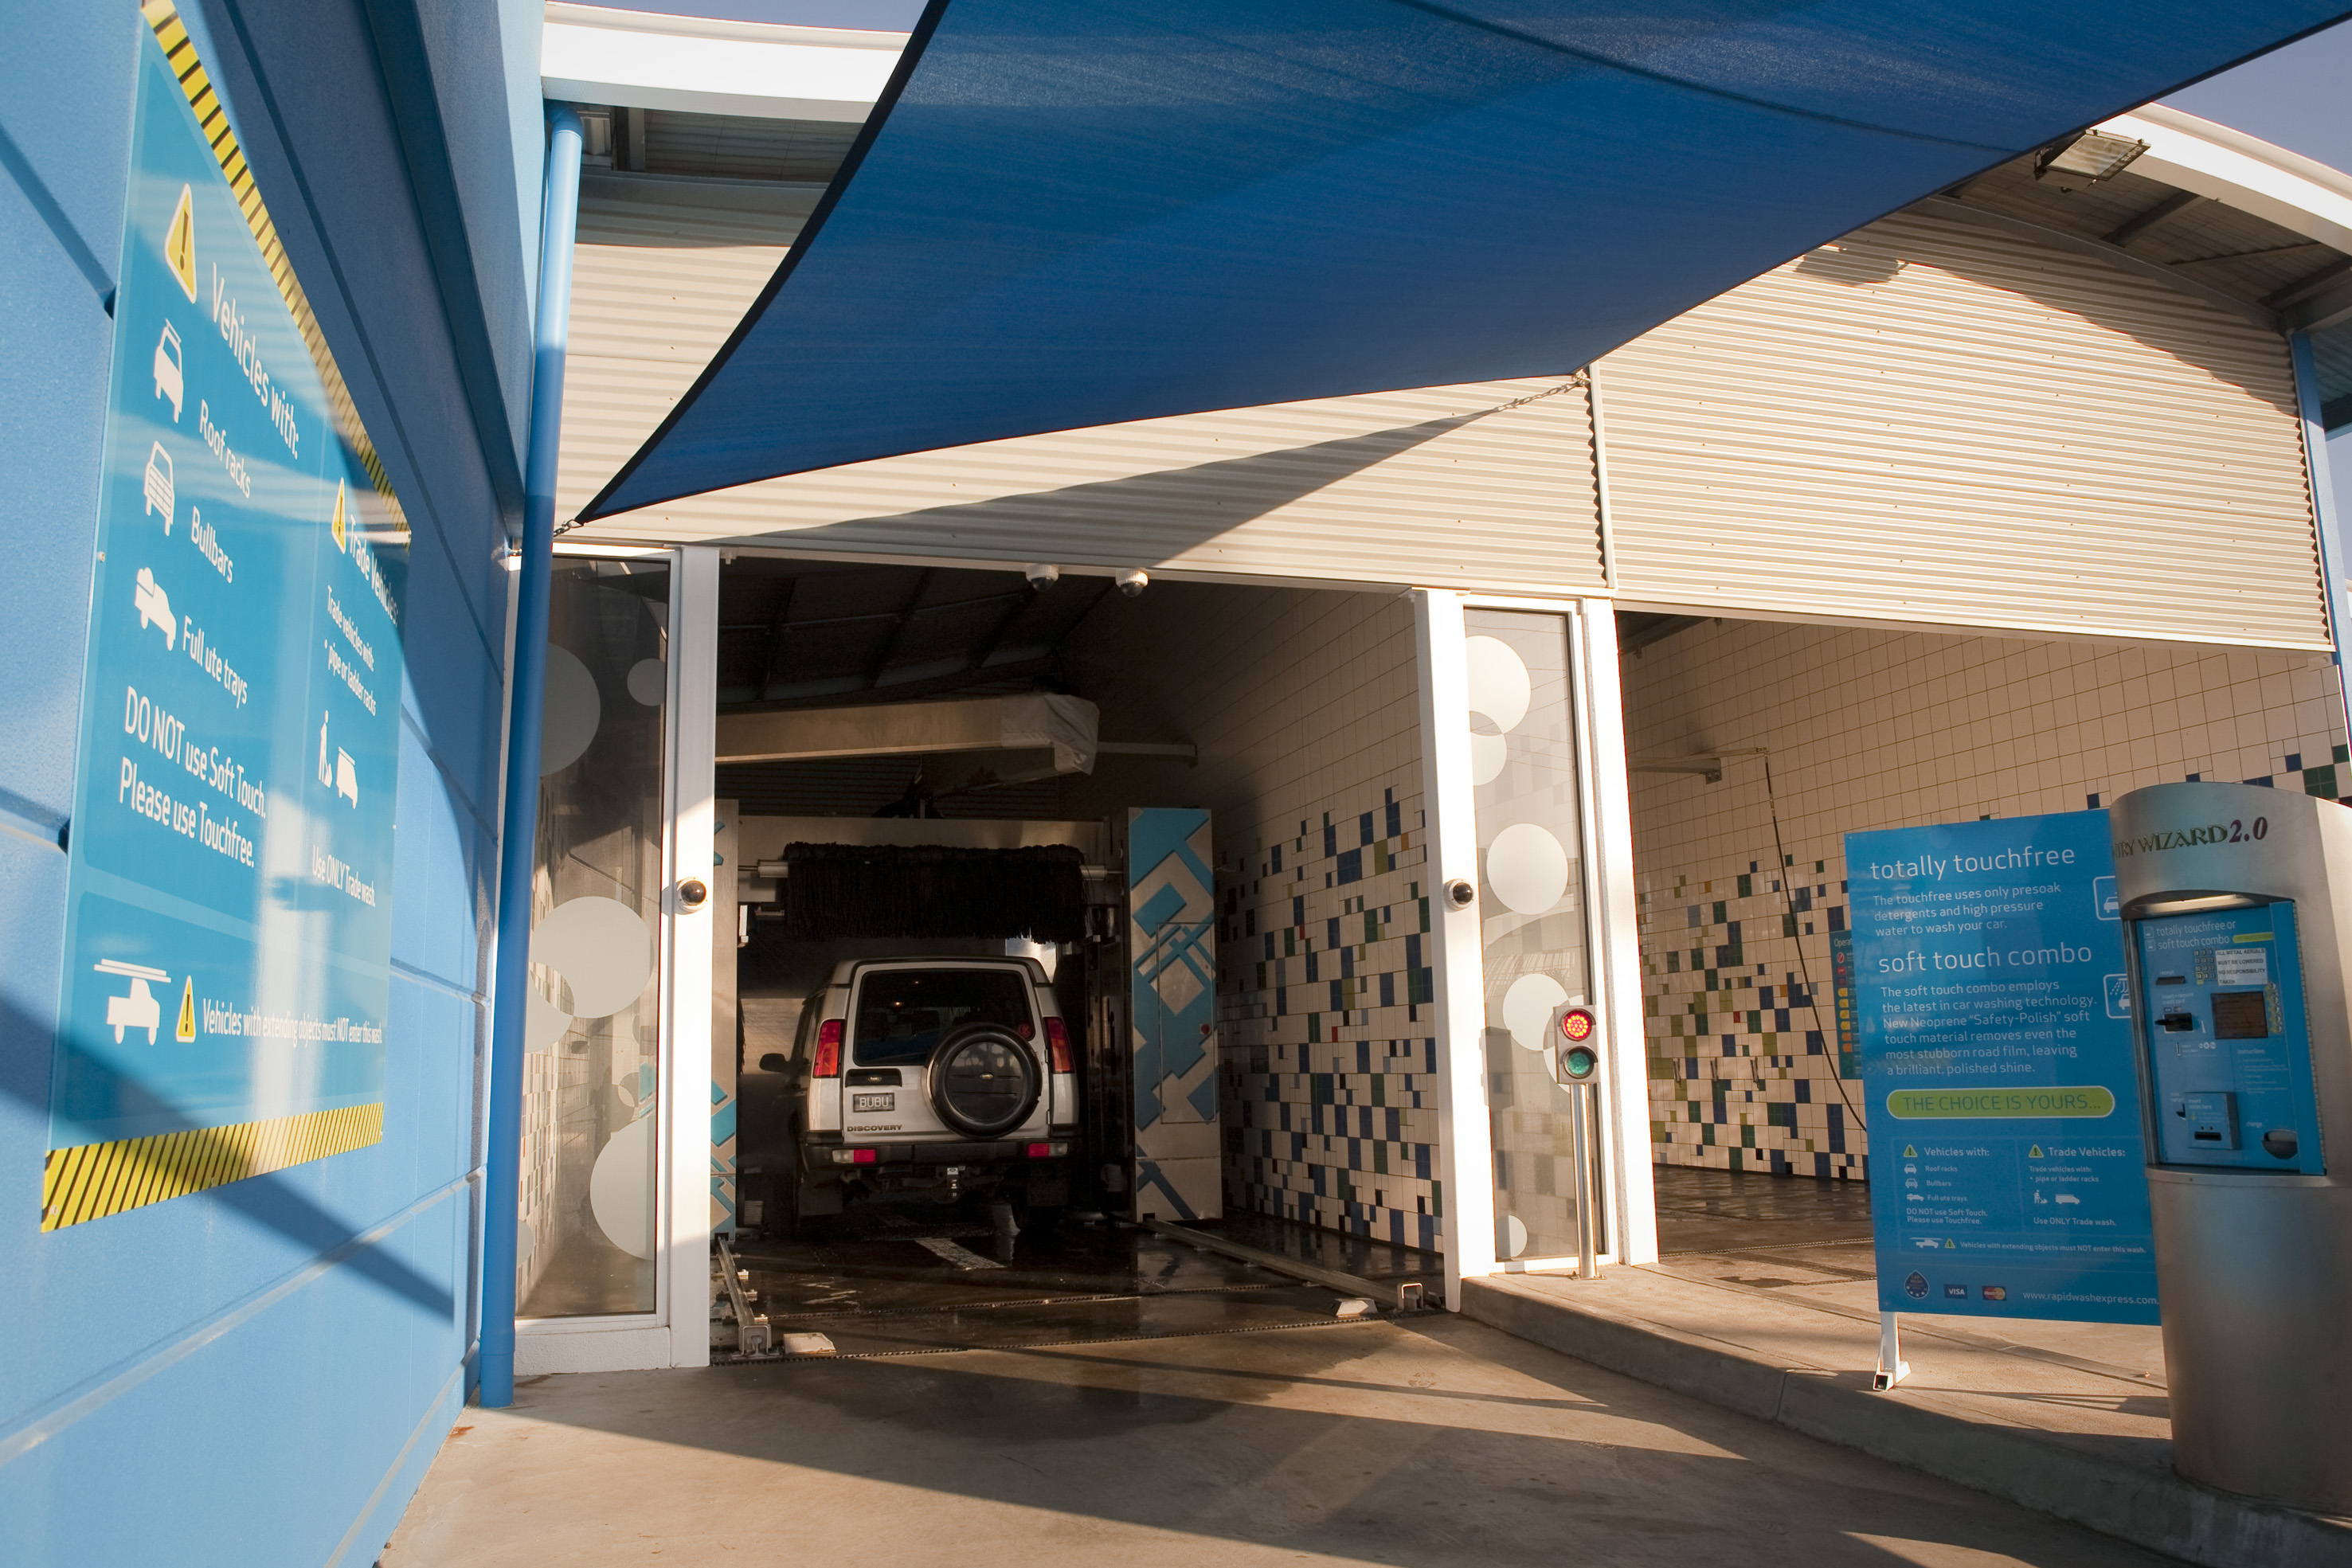 Car wash locations photos coleman hanna carwash systems aspendale gardens victoria australia efusion rollover automatic wash and self serve solutioingenieria Choice Image